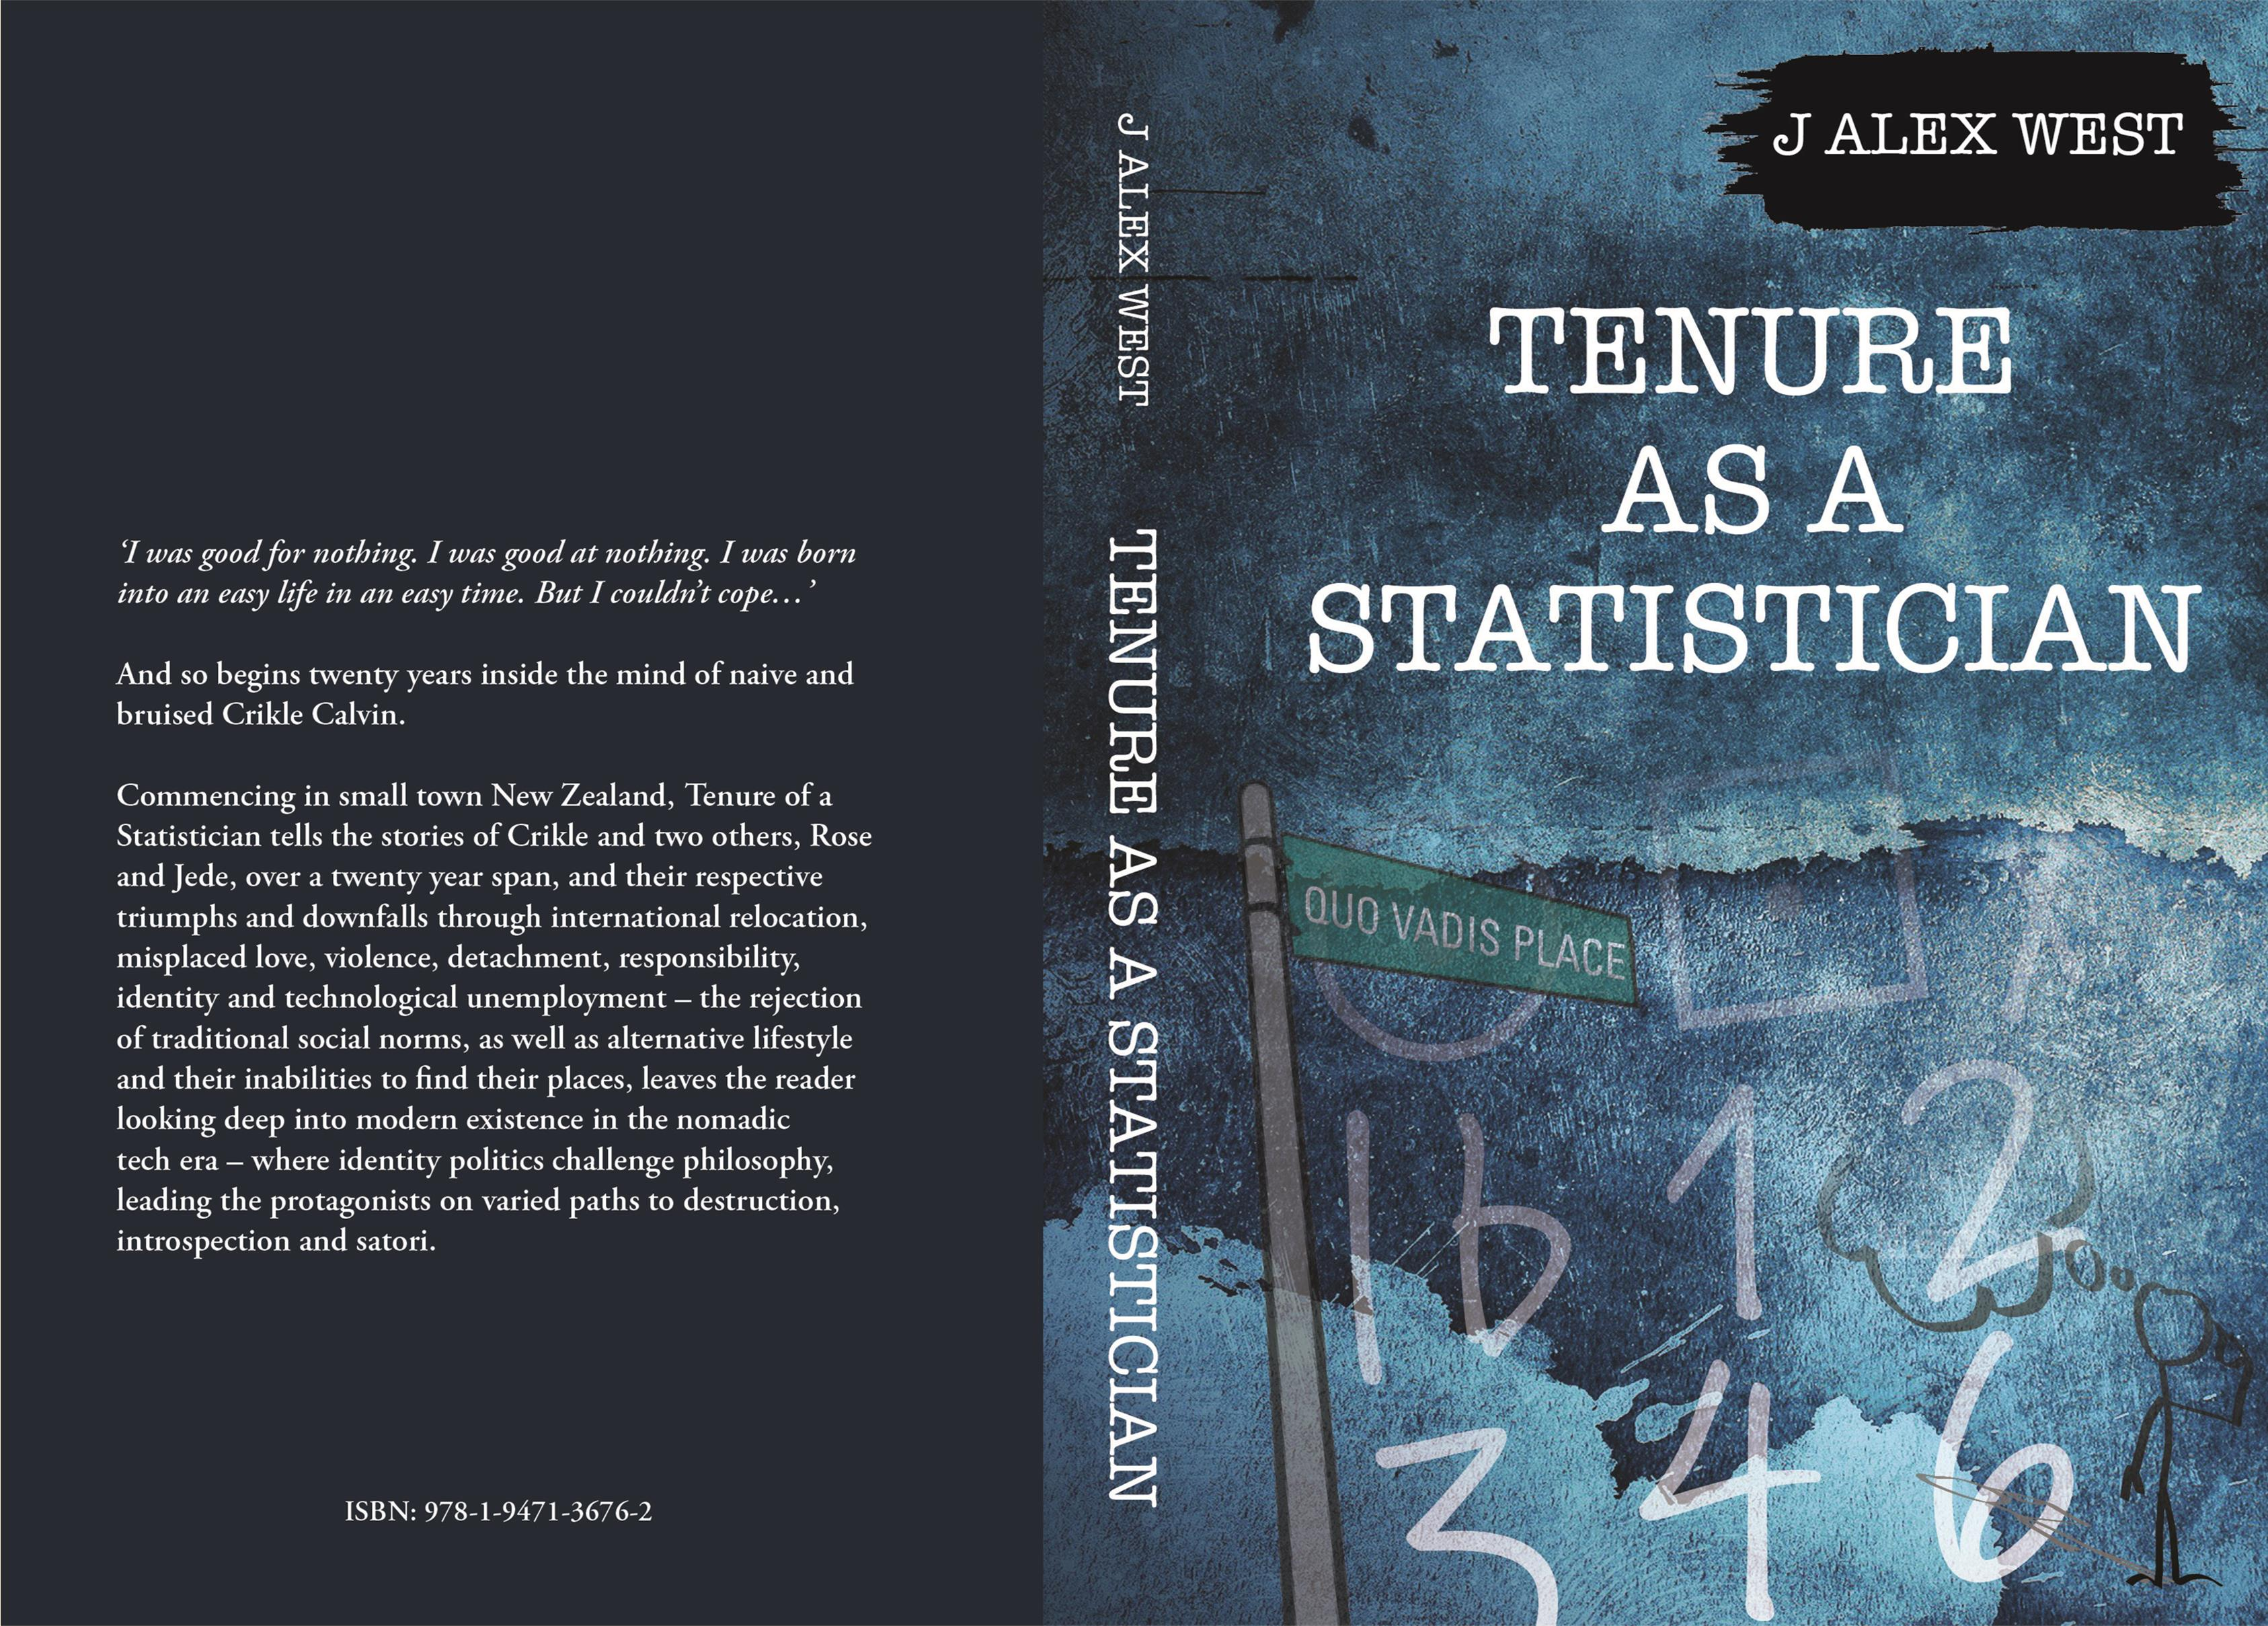 TENURE AS A STATISTICIAN cover image